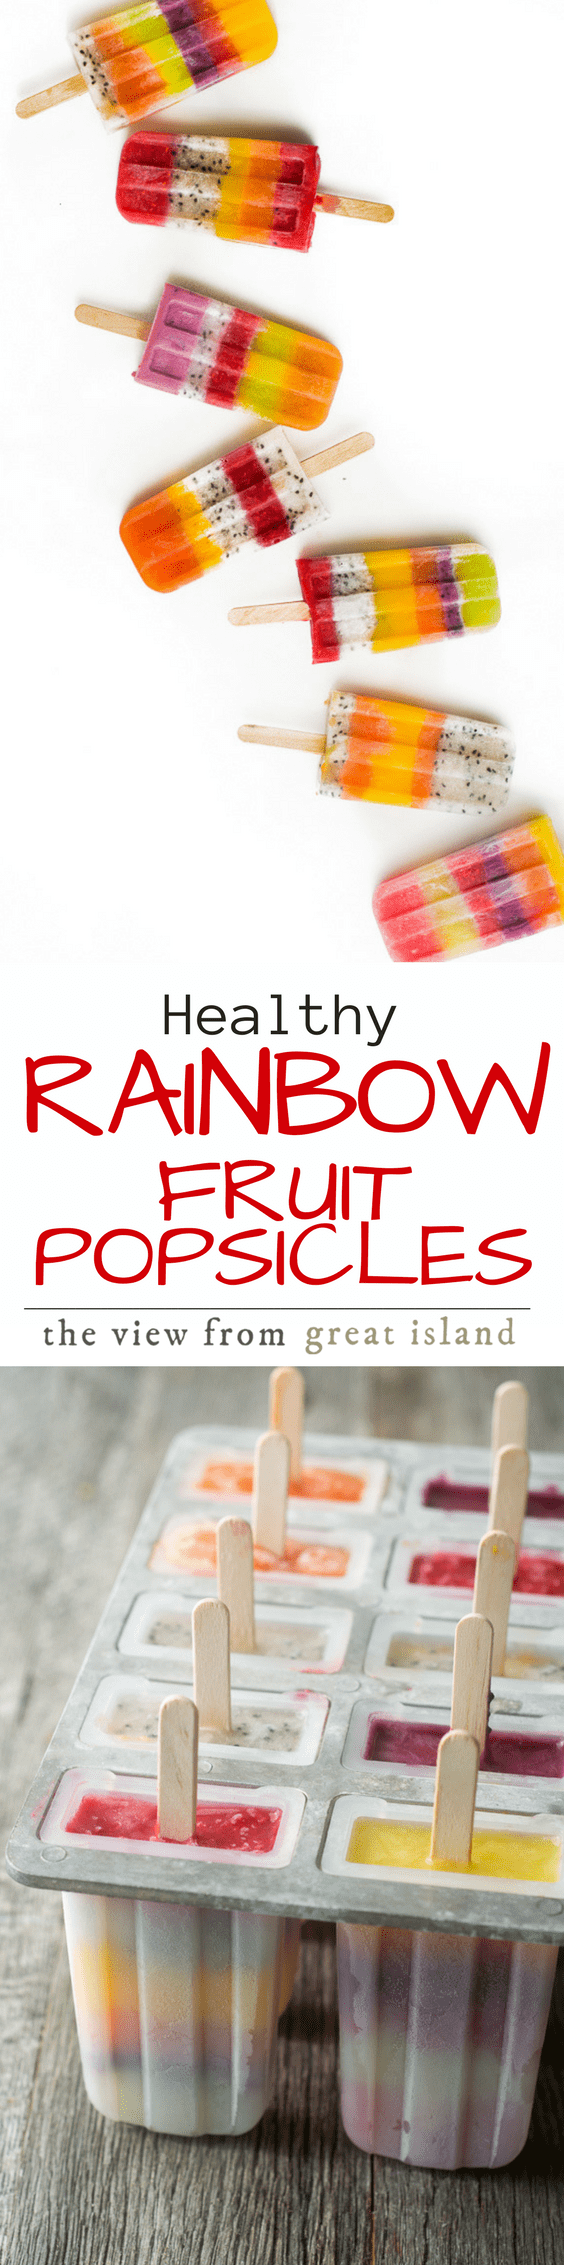 Not your toddler's Rainbow Popsicles --- these healthy frozen treats are made with exotic fruits like mango, dragon fruit, papaya, golden kiwi and black raspberry to tempt the most sophisticated palates. | ice cream | fruit | healthy | kids dessert | summer | juice |